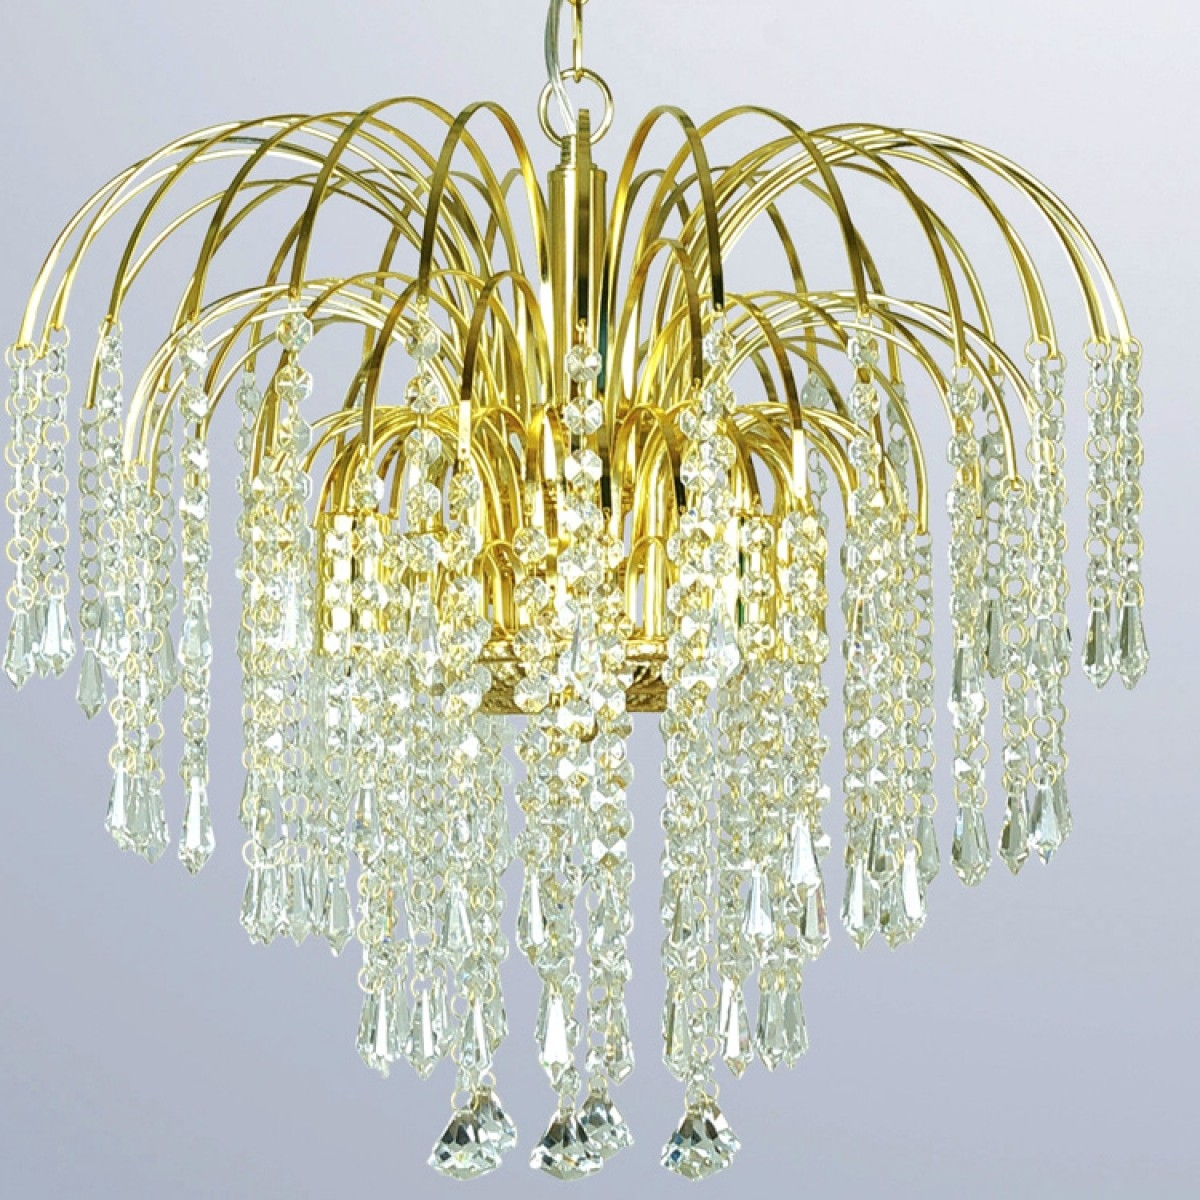 Waterfall Four Light Gold Crystal Chandelier Dove Mill Pertaining To Crystal Waterfall Chandelier (Image 15 of 15)